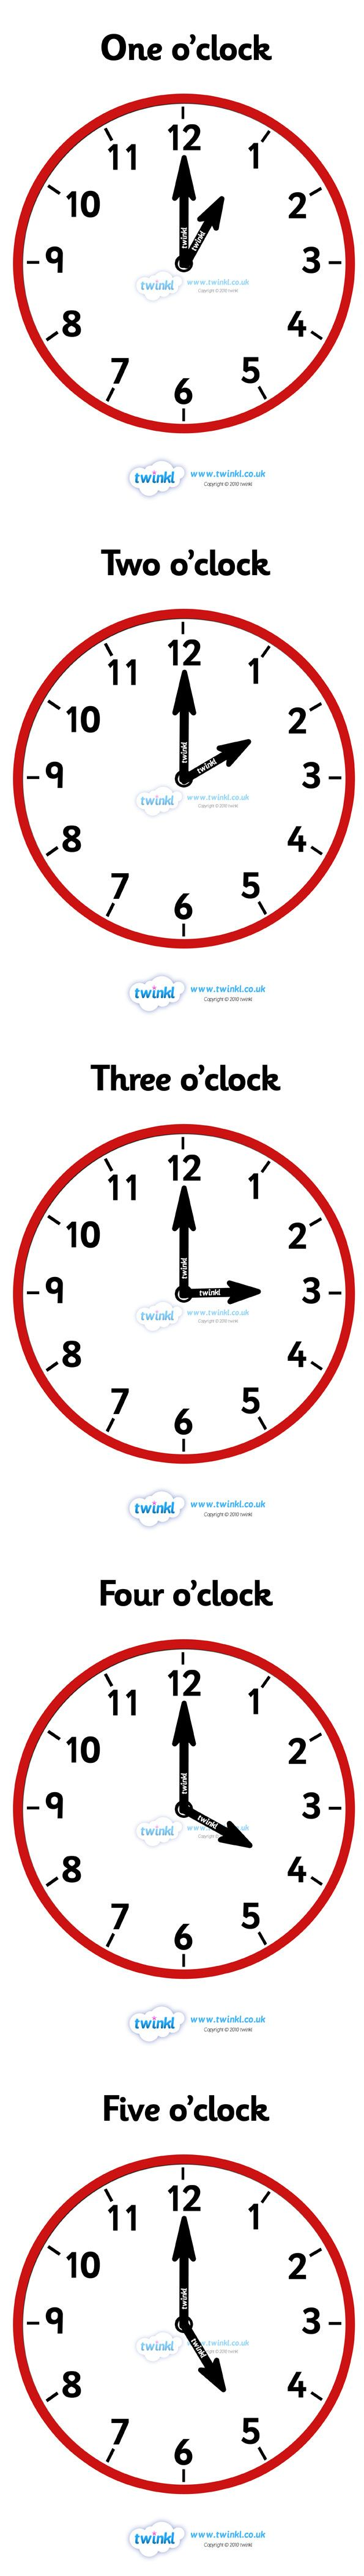 Twinkl Resources >> Analogue Clocks Hourly O'Clock  >> Thousands of printable primary teaching resources for EYFS, KS1, KS2 and beyond! time resource, time vocabulary, clock face, O'clock, half past, quarter past, quarter to, shapes, spaces, measures,